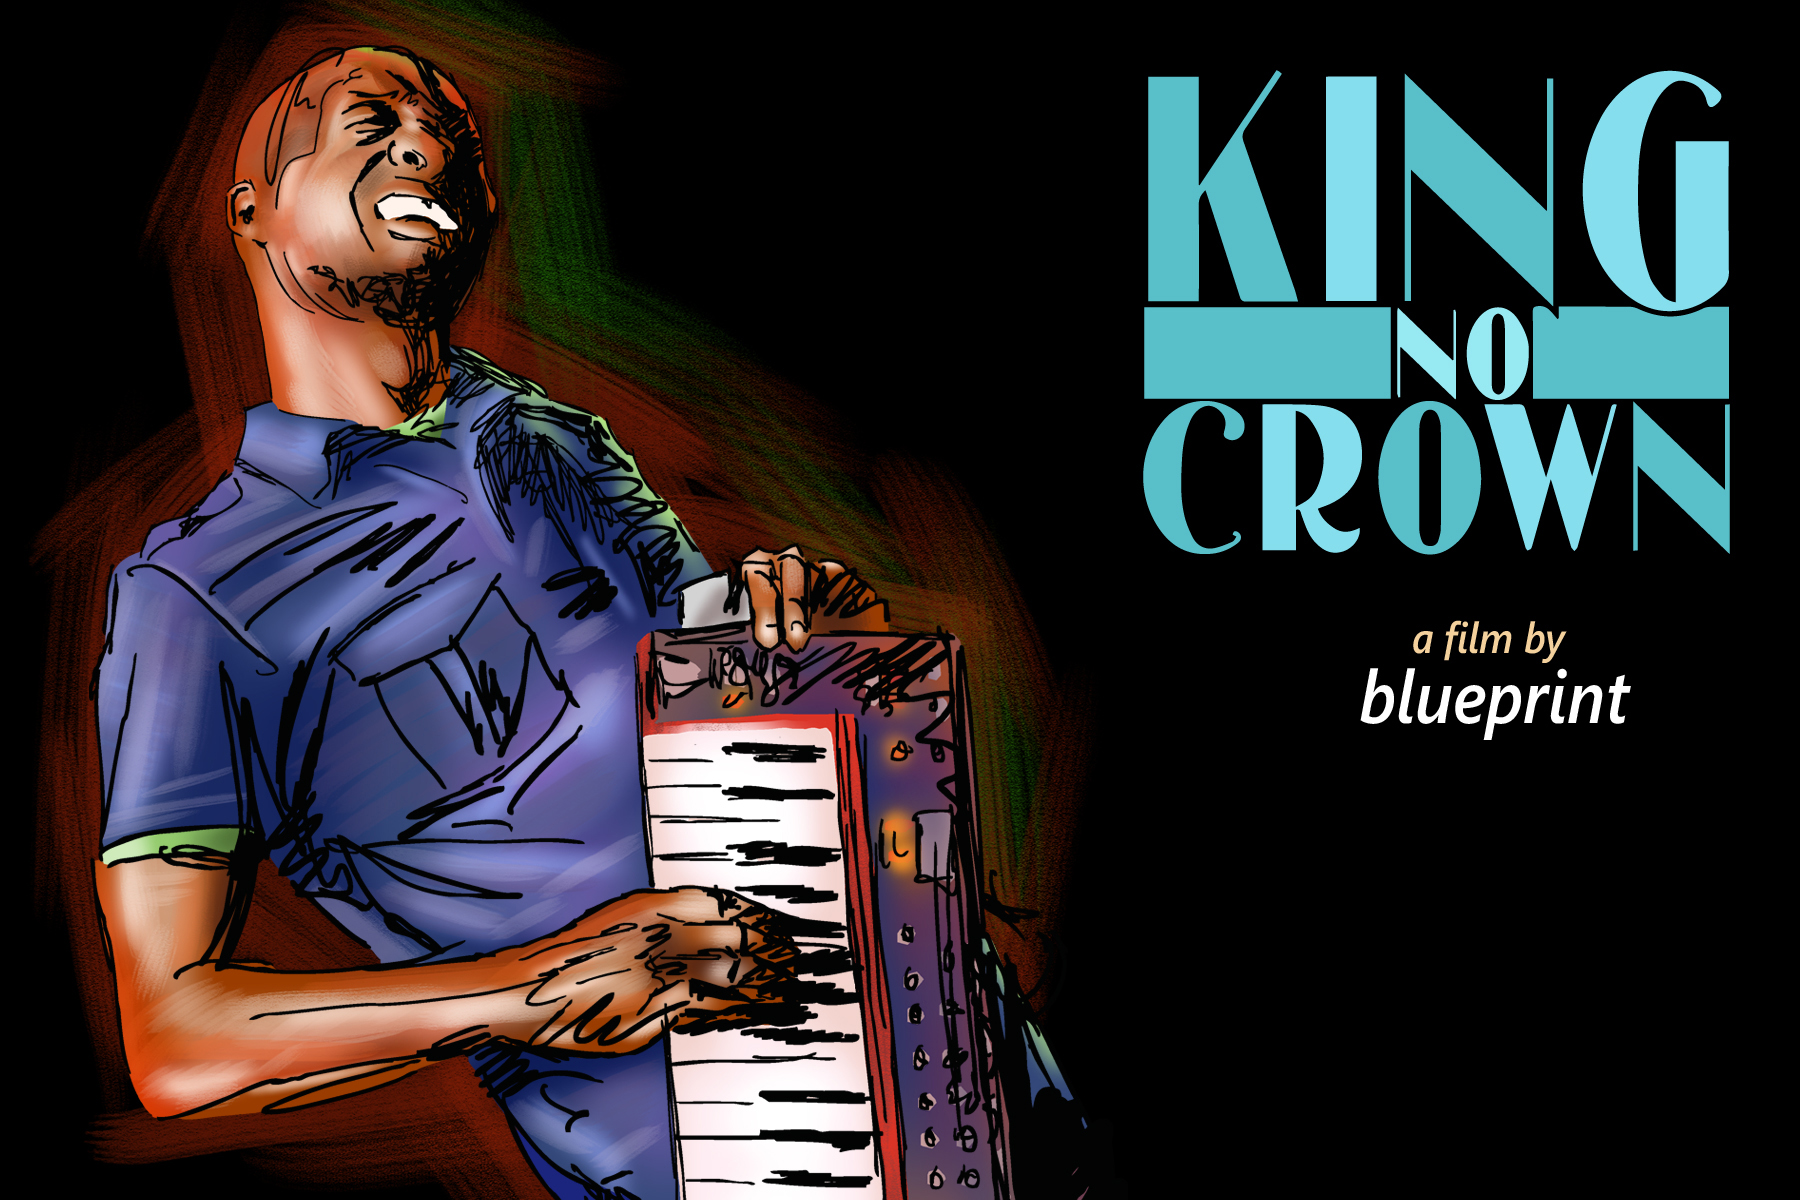 News archives weightless recordings in advance of the release of his upcoming debut film king no crown blueprint has just announced the first two public screenings to be held in august malvernweather Choice Image